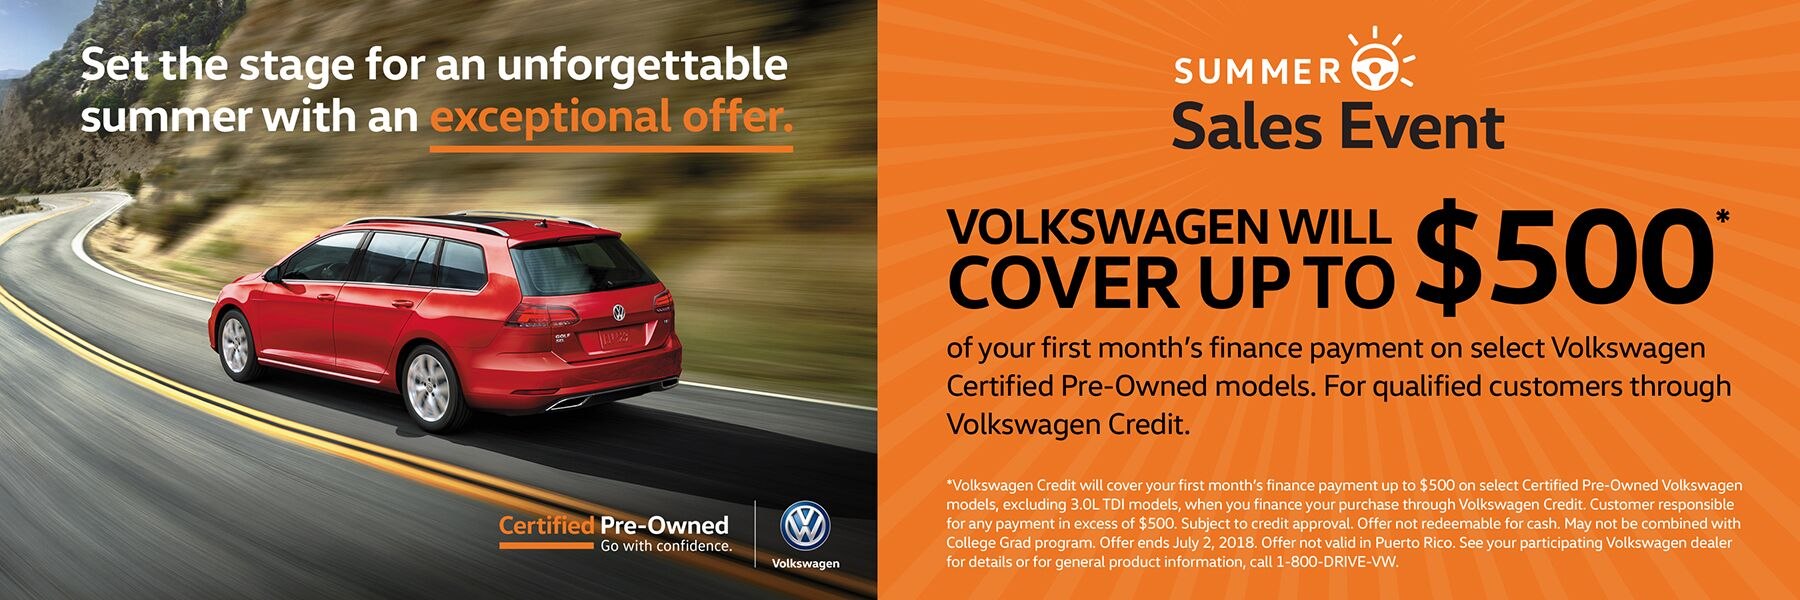 Volkswagen Certified Pre-Owned in Pompano Beach, FL